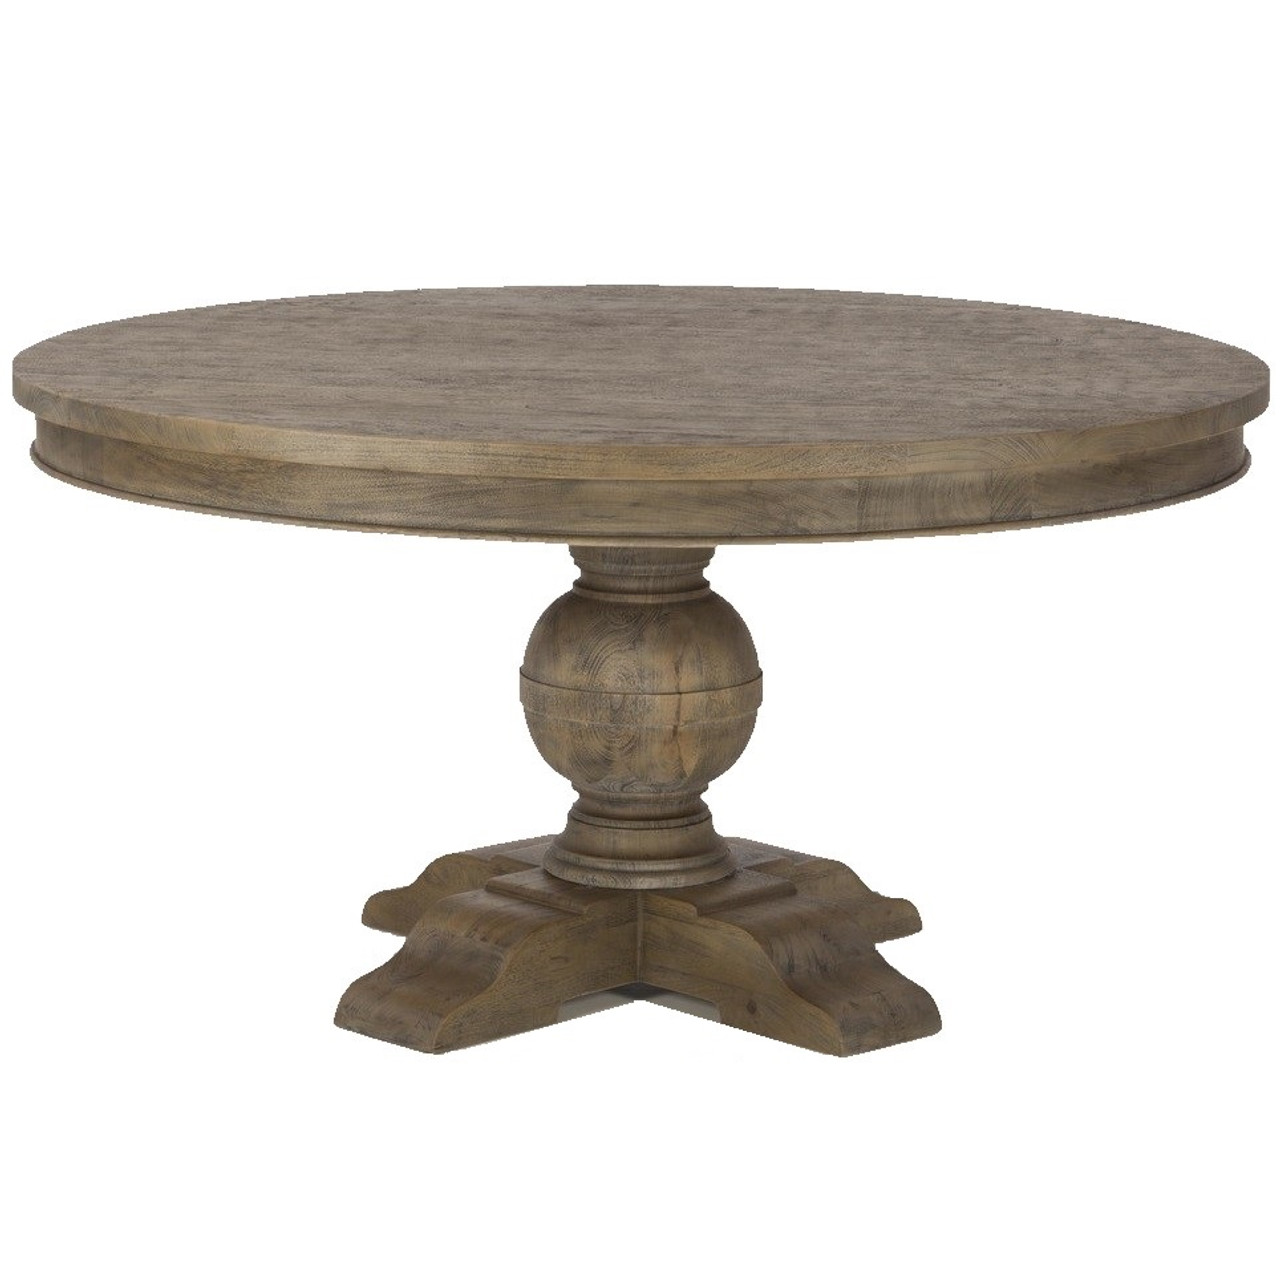 Groovy French Urn Solid Wood Pedestal Round Dining Table 54 Beutiful Home Inspiration Xortanetmahrainfo